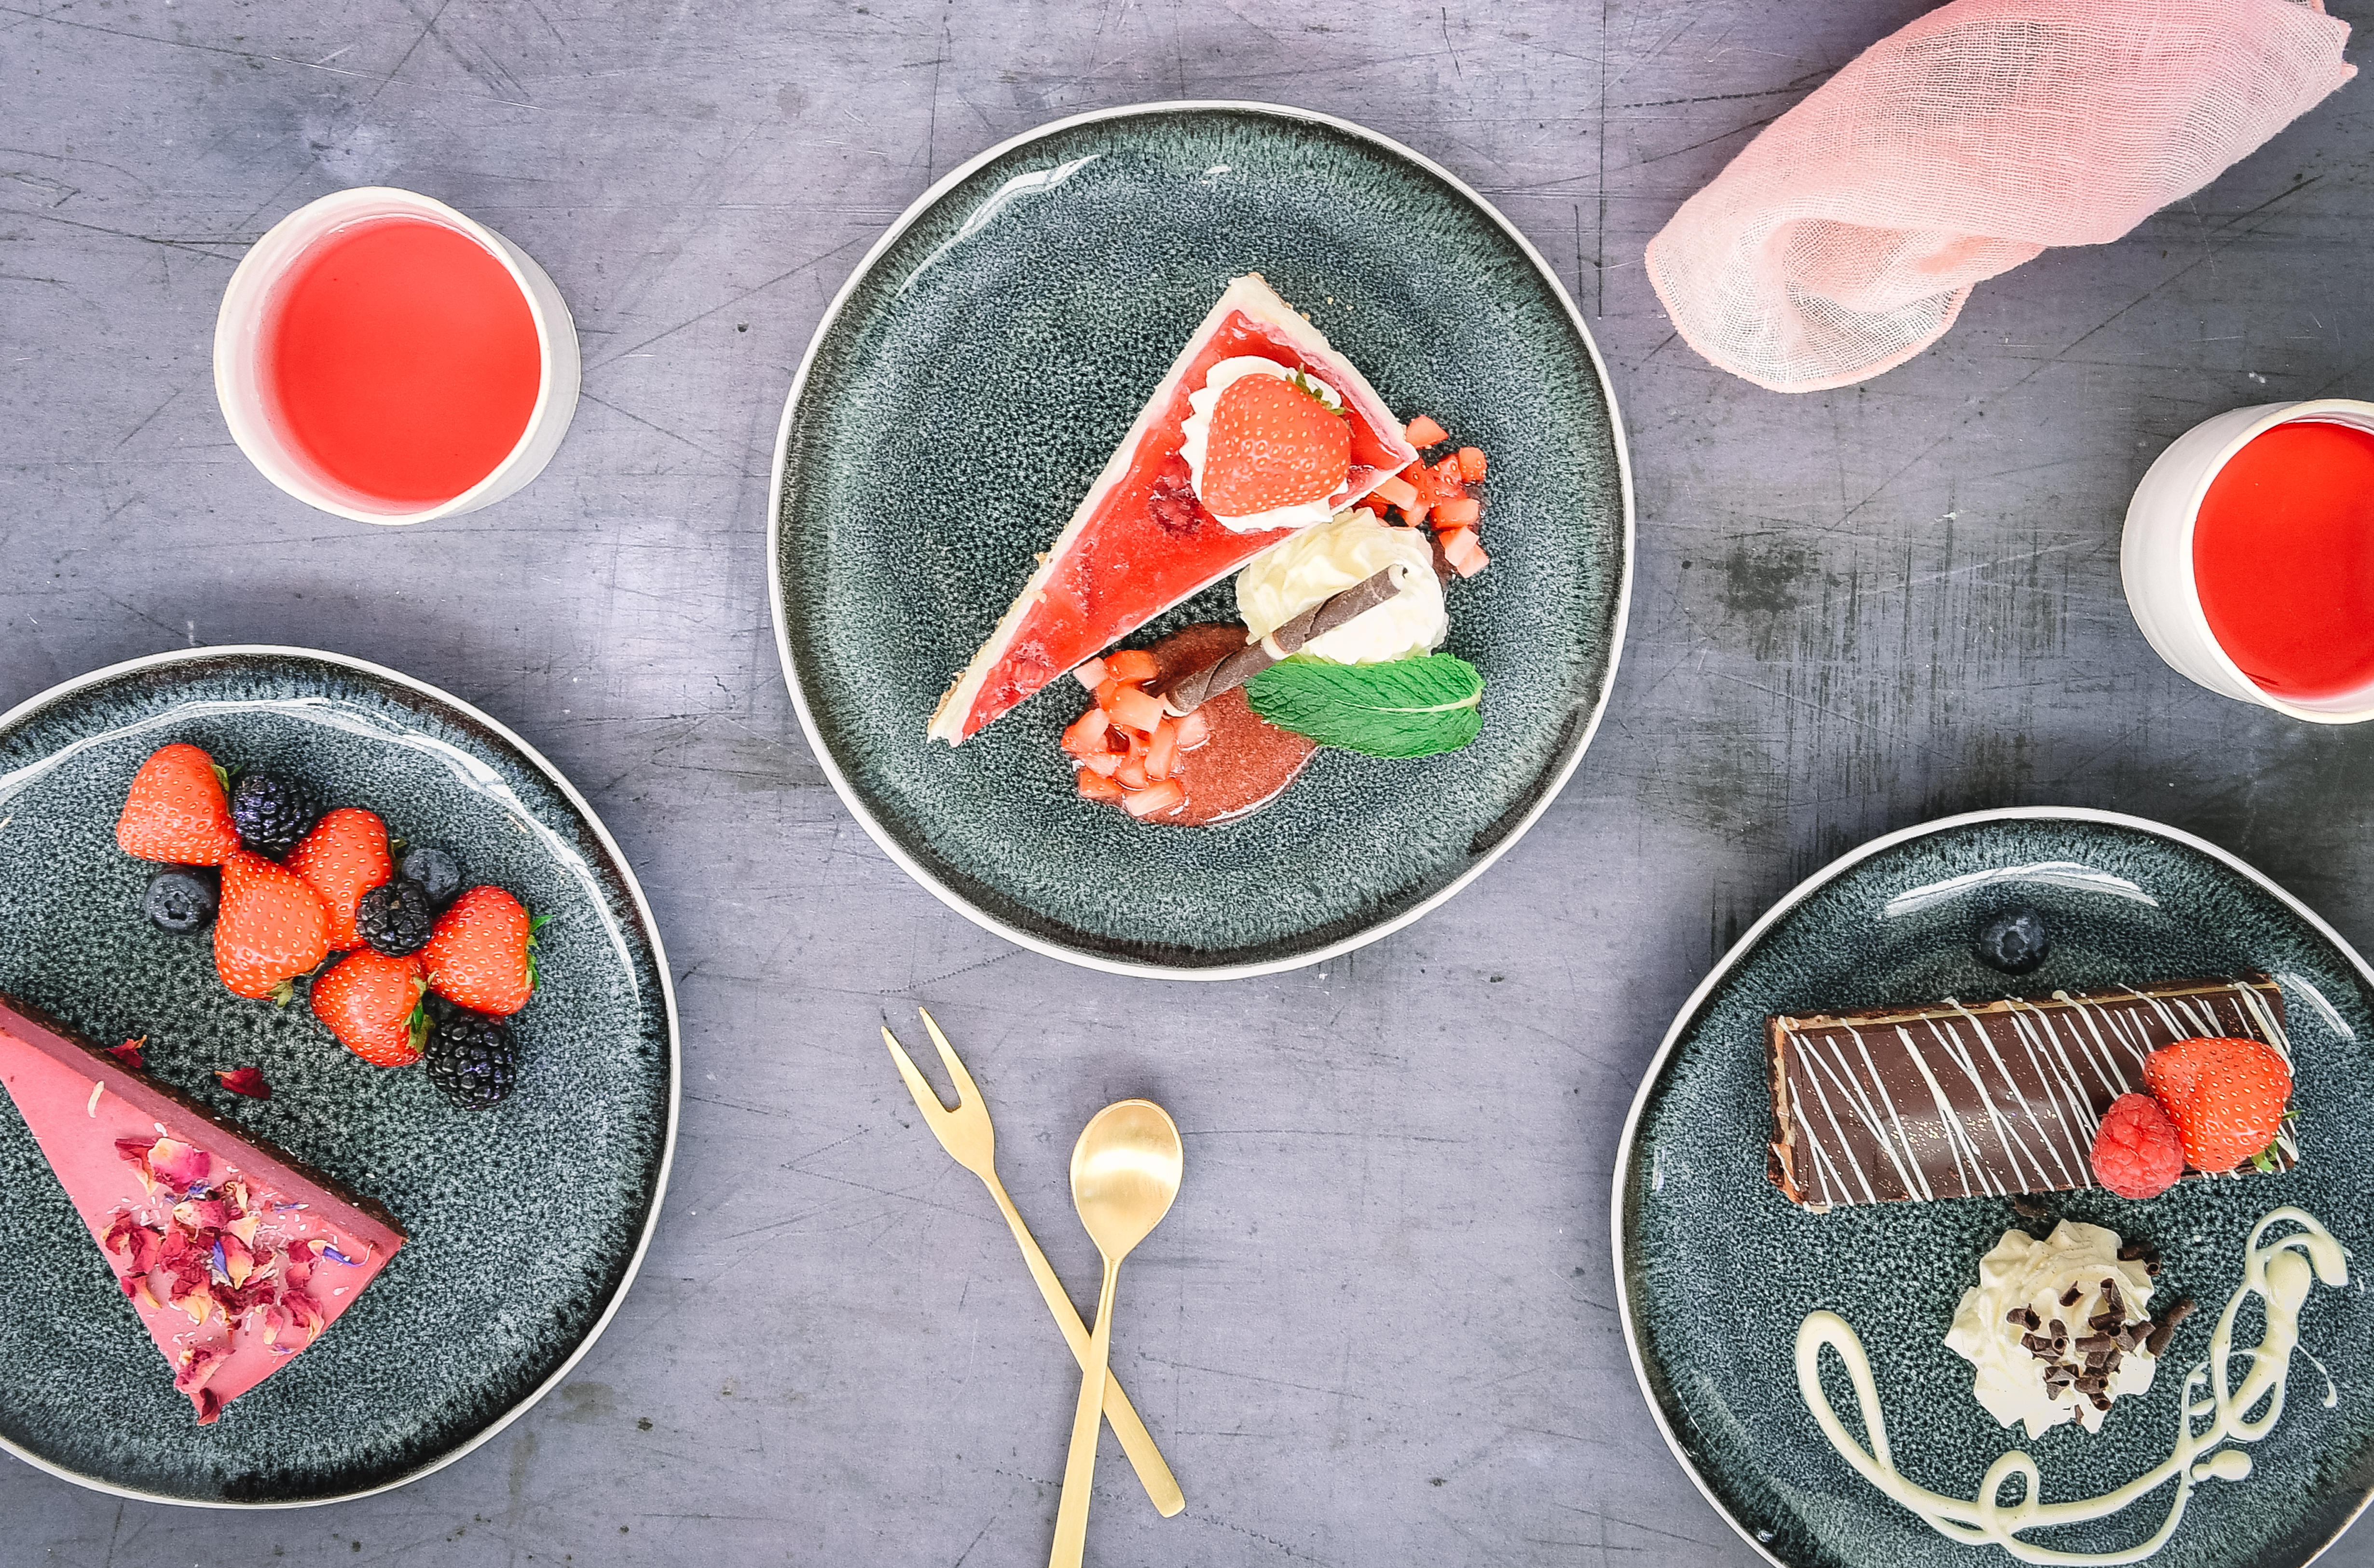 Delicious desserts for your choice of menu when private dining at Restoration Yard